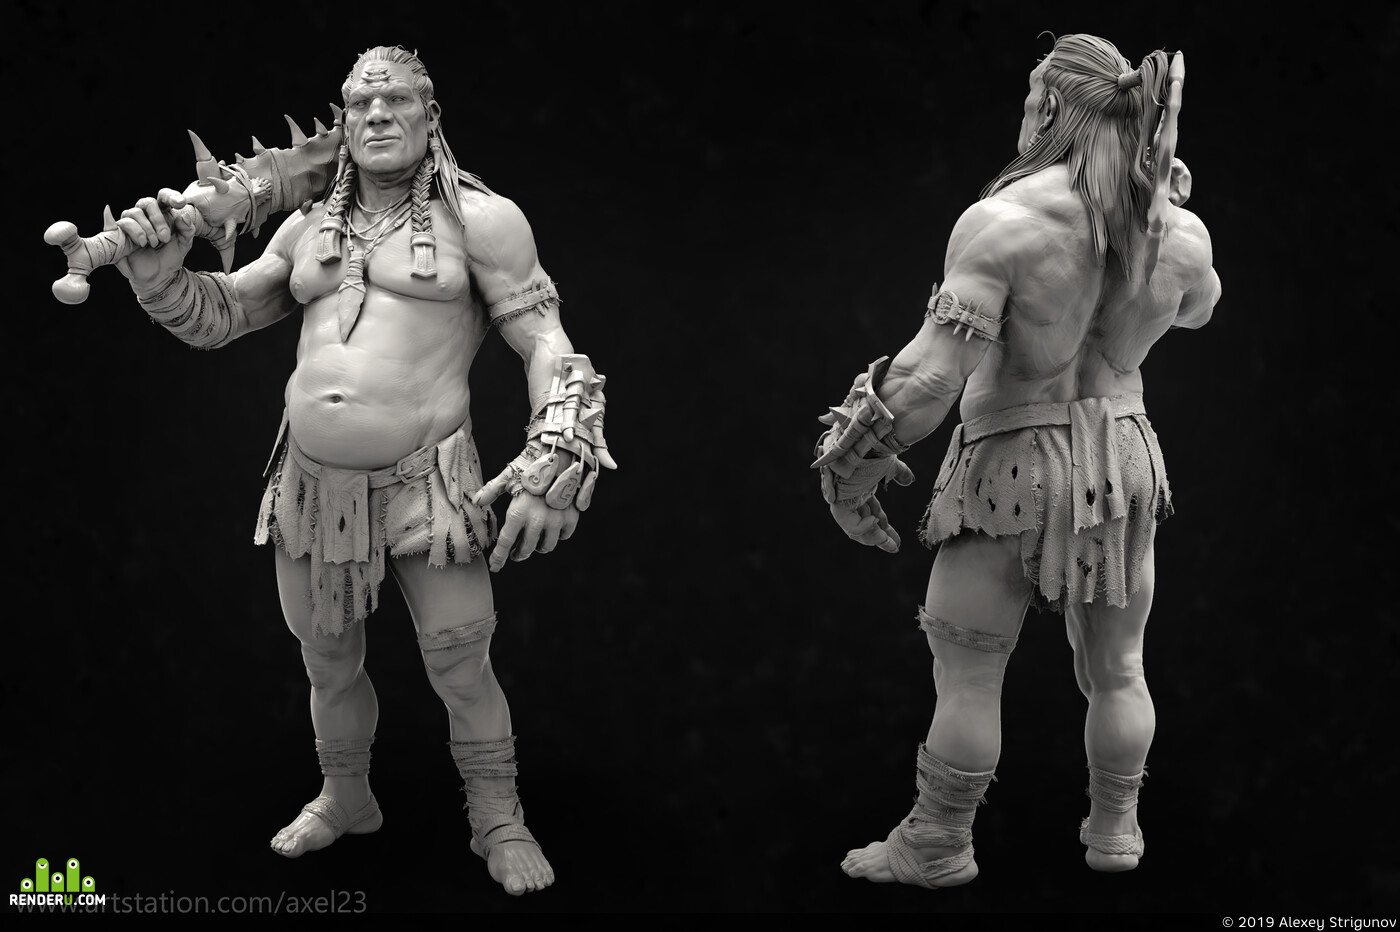 3d, 3Dprinting, concept, characterdesign, Character, keeper, hight, keeperofthemountains, персонаж, Персонажи